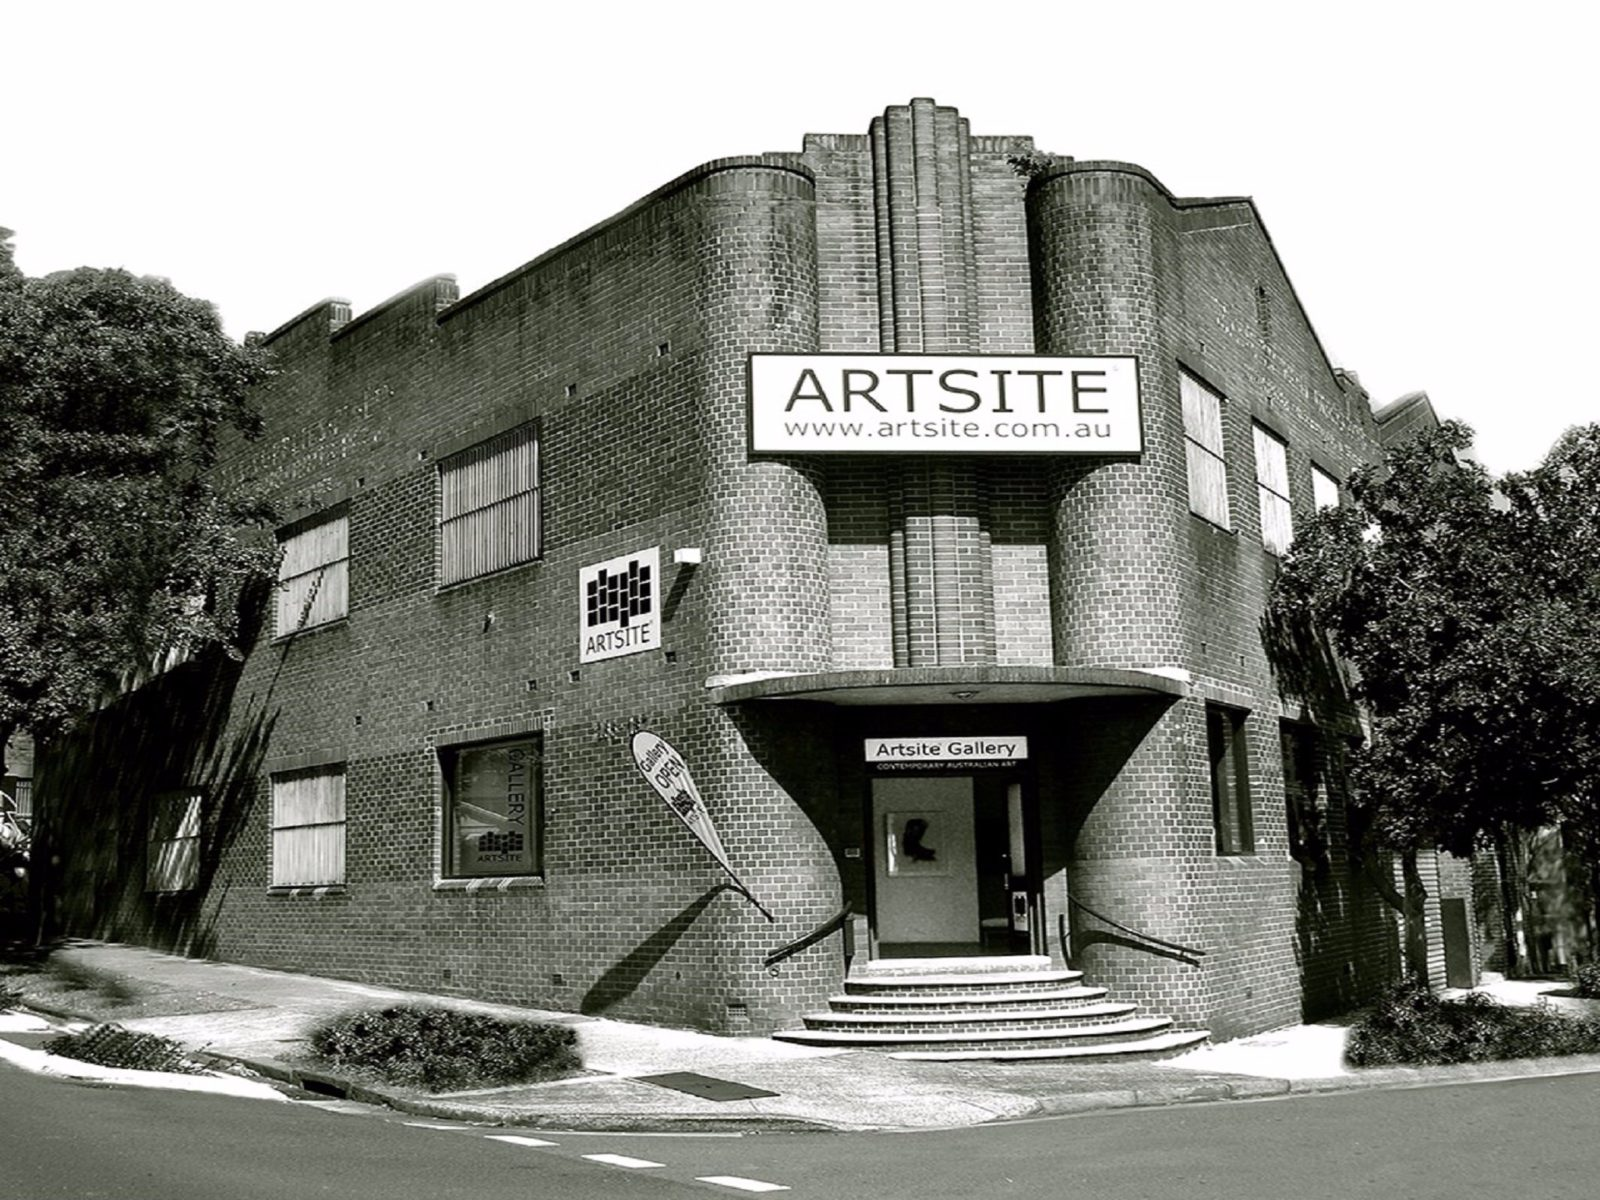 Artsite is a registered Trade Mark (Word Mark) all rights reserved